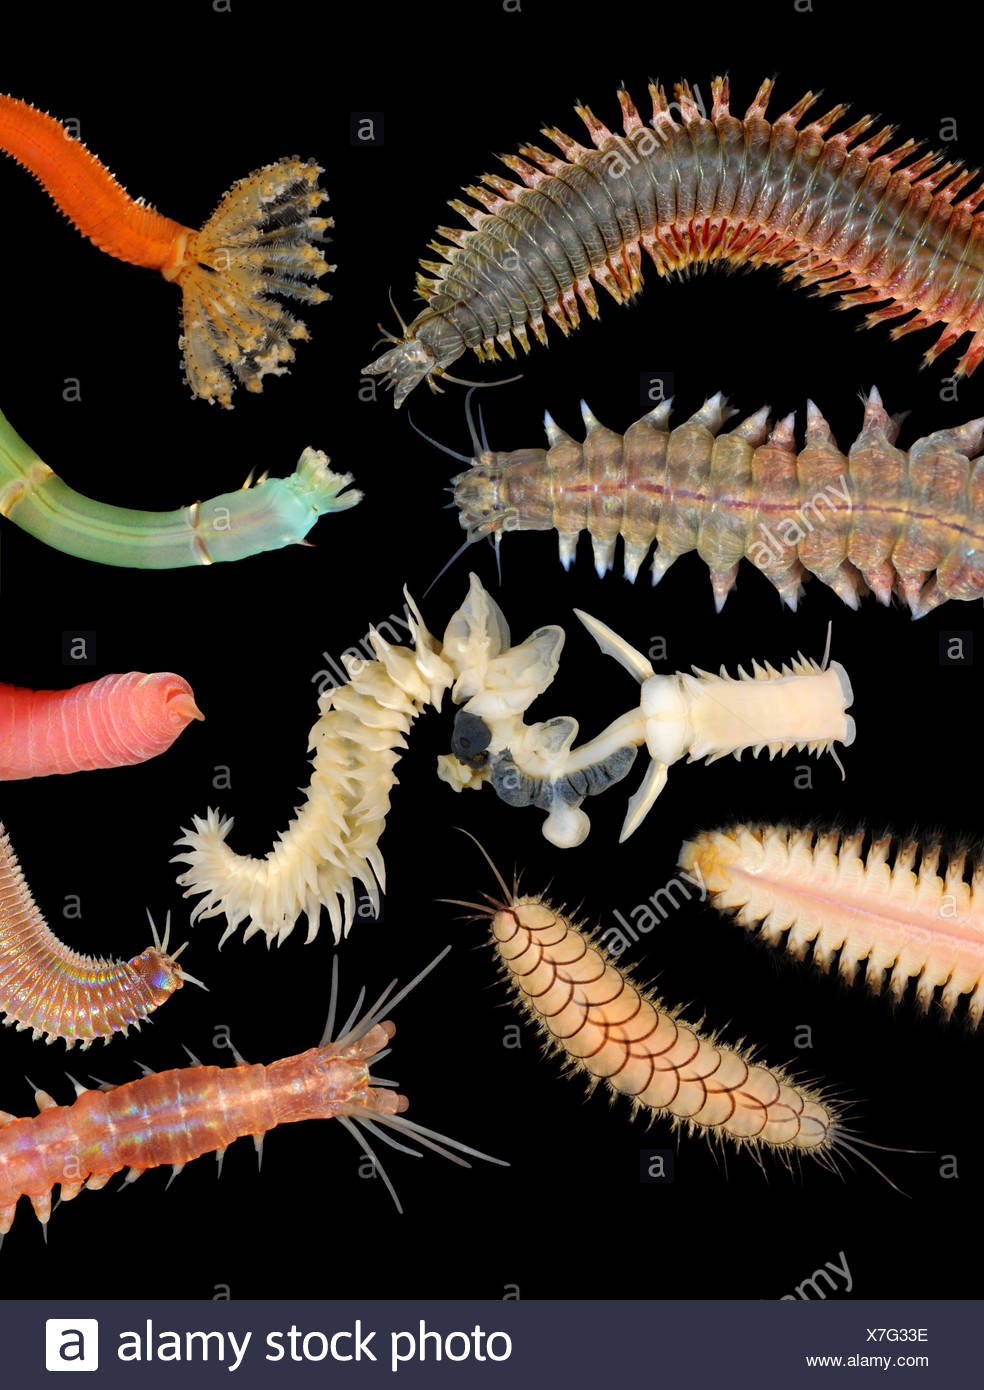 Polychaete Worms - Stock Image